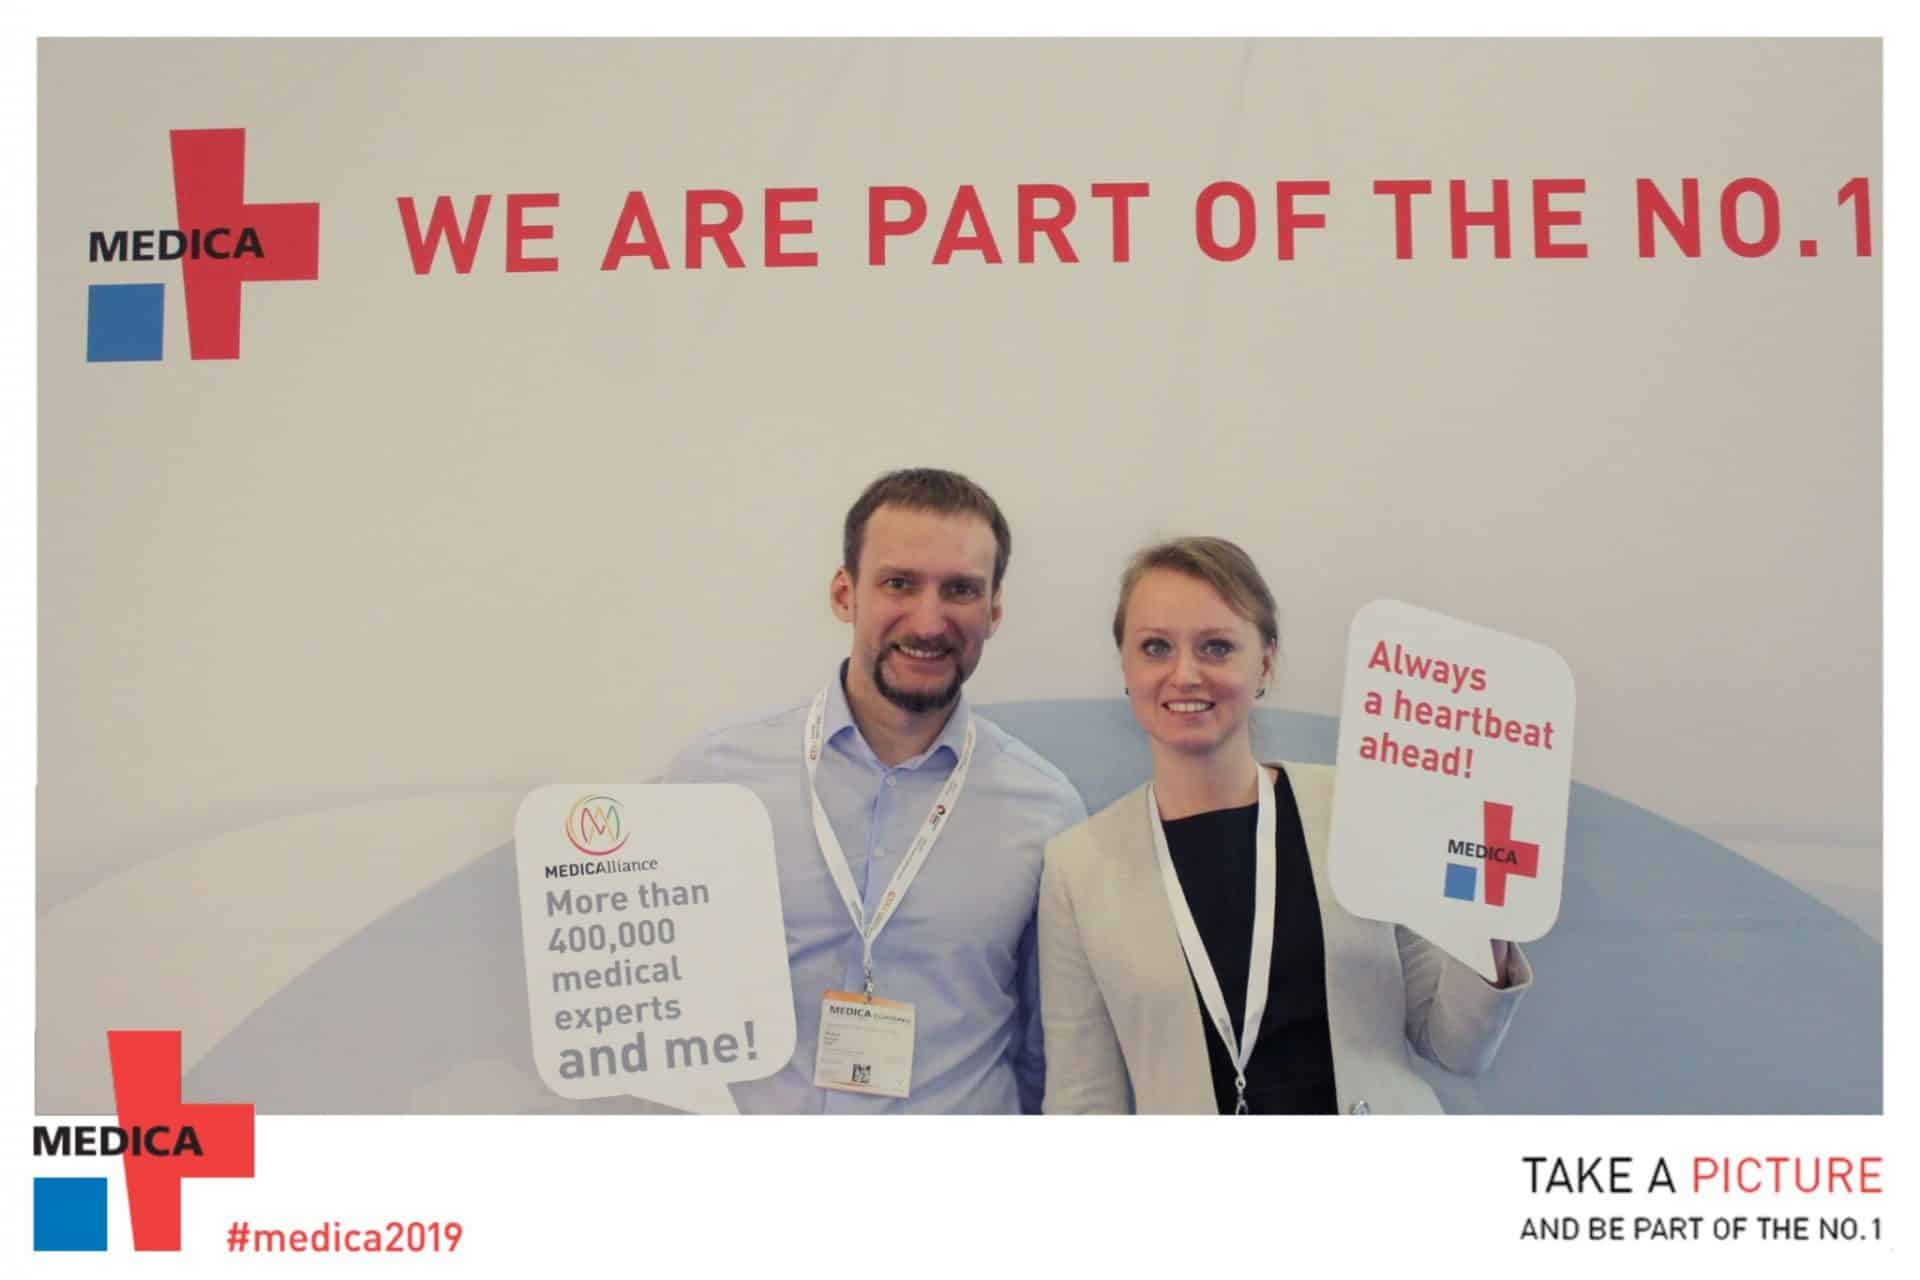 MEDICA 2019: Wearables, Digital Twins, and AI in Healthcare